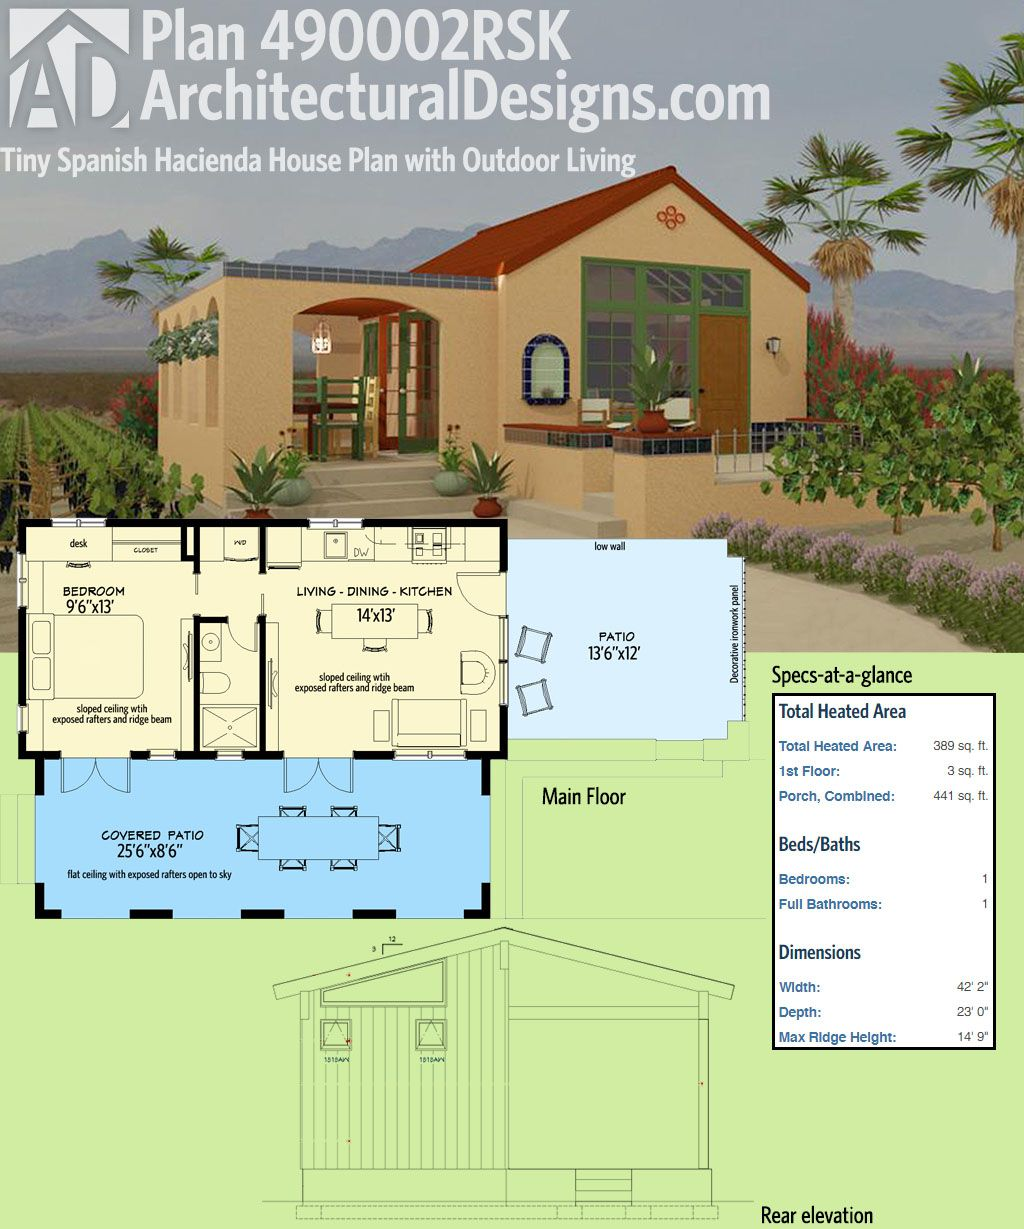 plan 490002rsk: tiny spanish hacienda house plan with outdoor